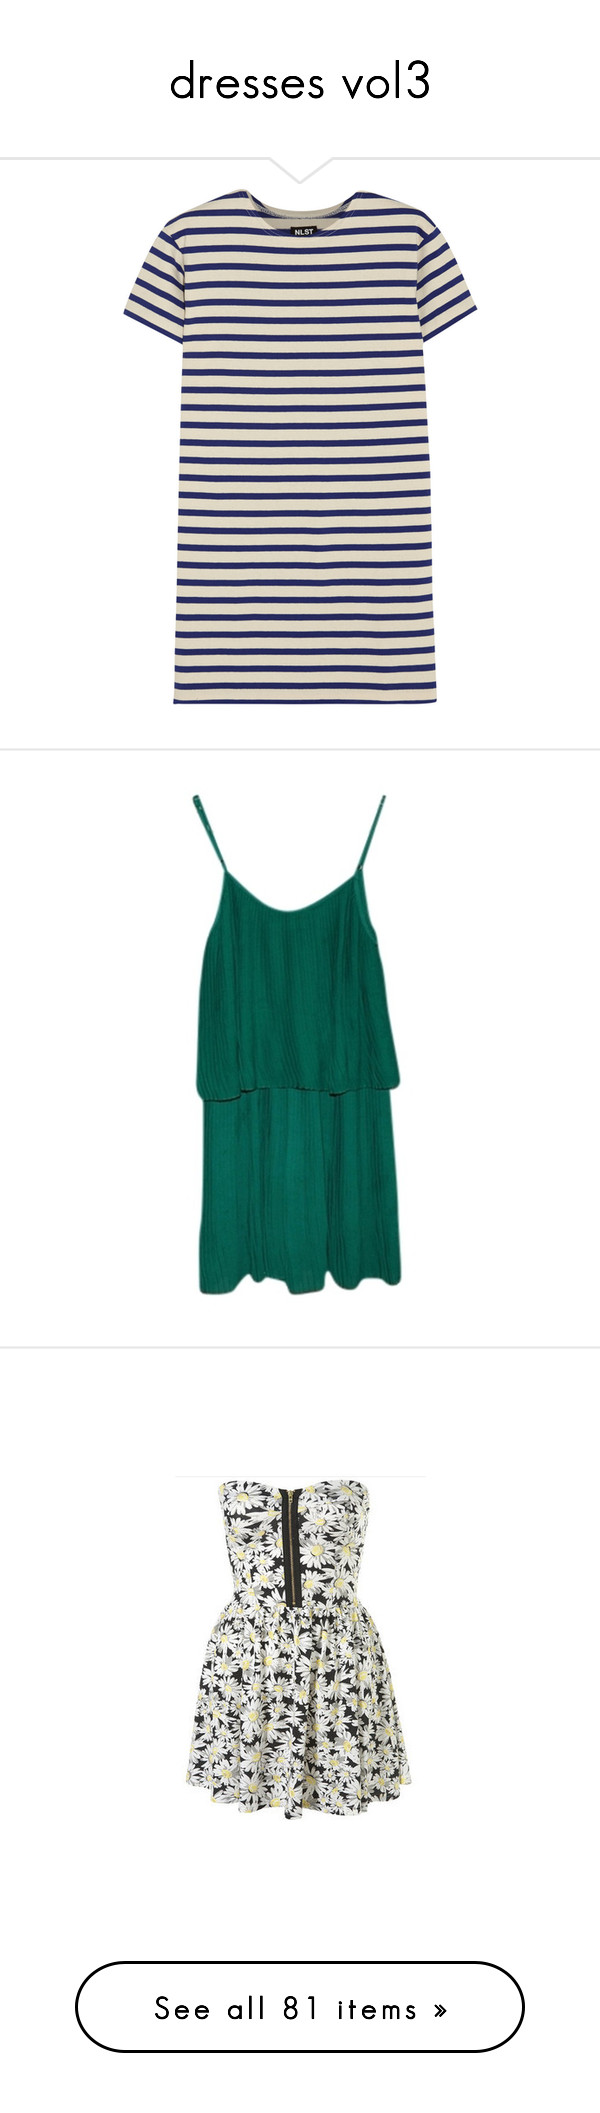 """""""dresses vol3"""" by annuroses ❤ liked on Polyvore featuring dresses, tops, vestidos, robe, short white dresses, mini dress, short loose dress, loose mini dress, sporty dresses and blue dress"""